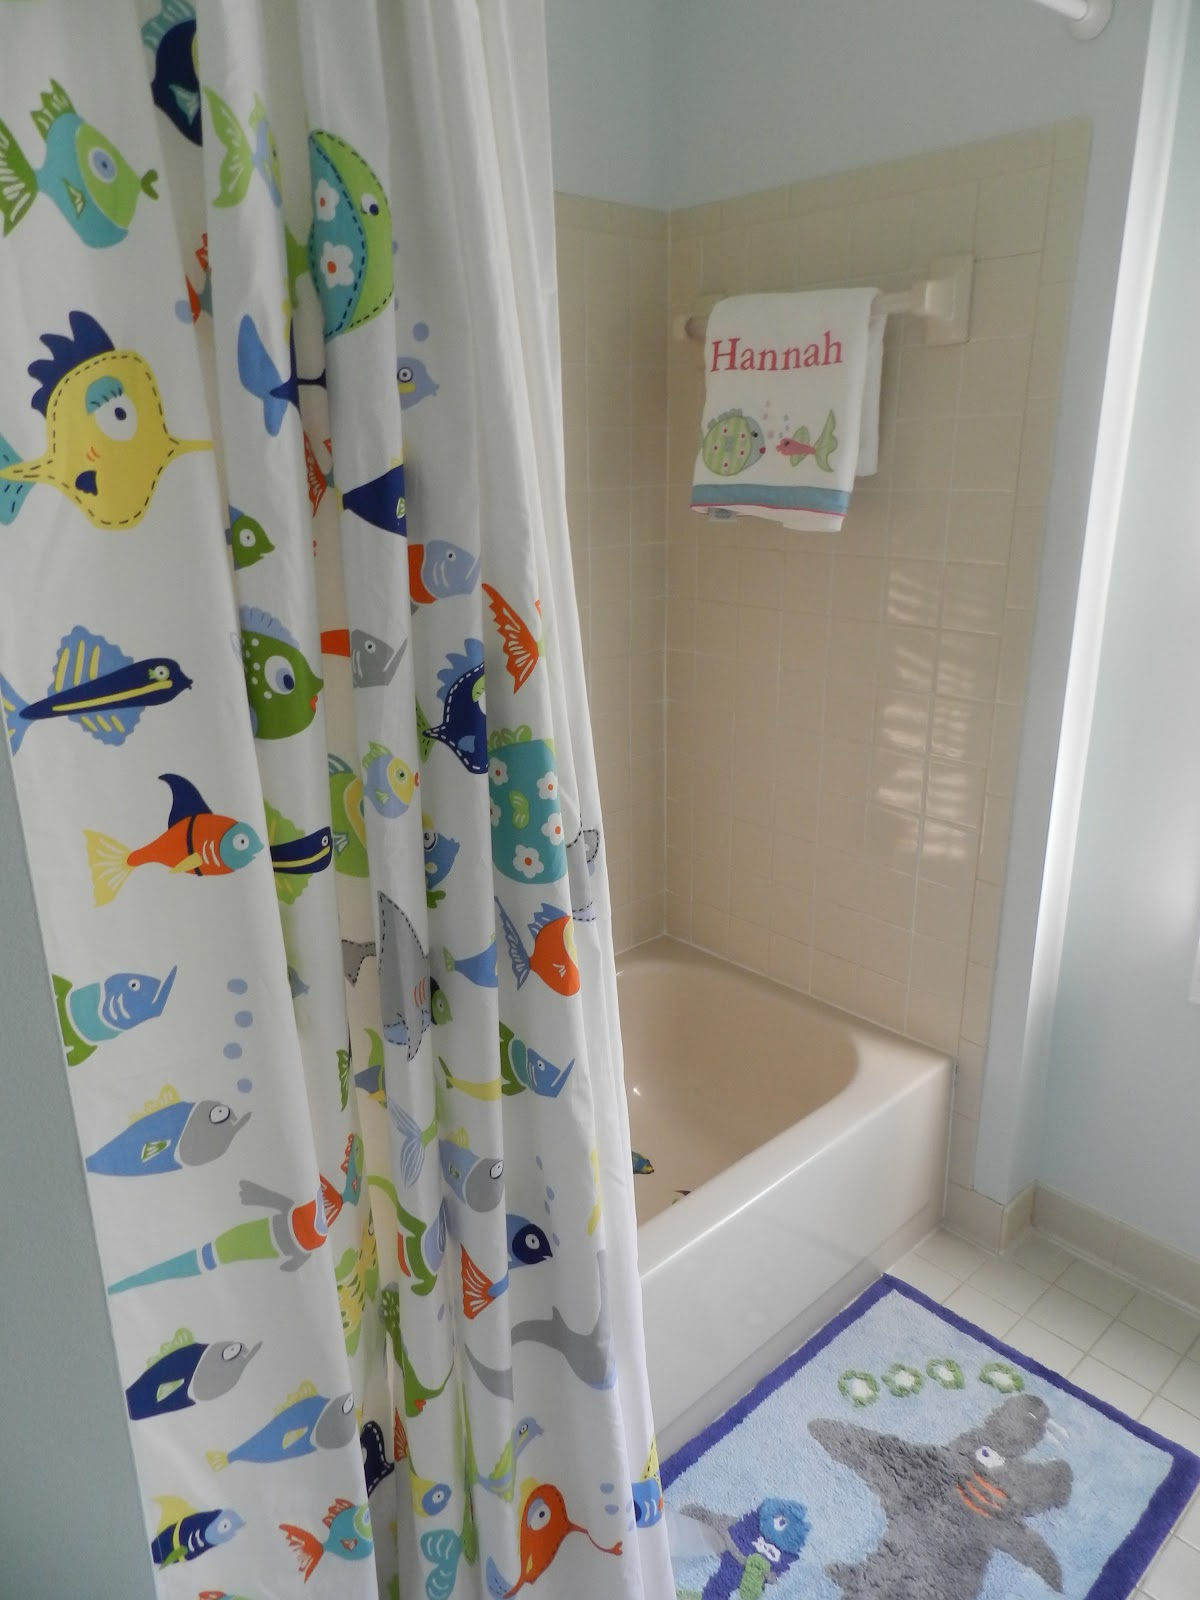 Fish shower curtains for kids - I Am Pleased With The Results And Just Need To Create Some Artwork For The Walls And Find Some Knickknacks For The Shelves And It Will Be All Finished